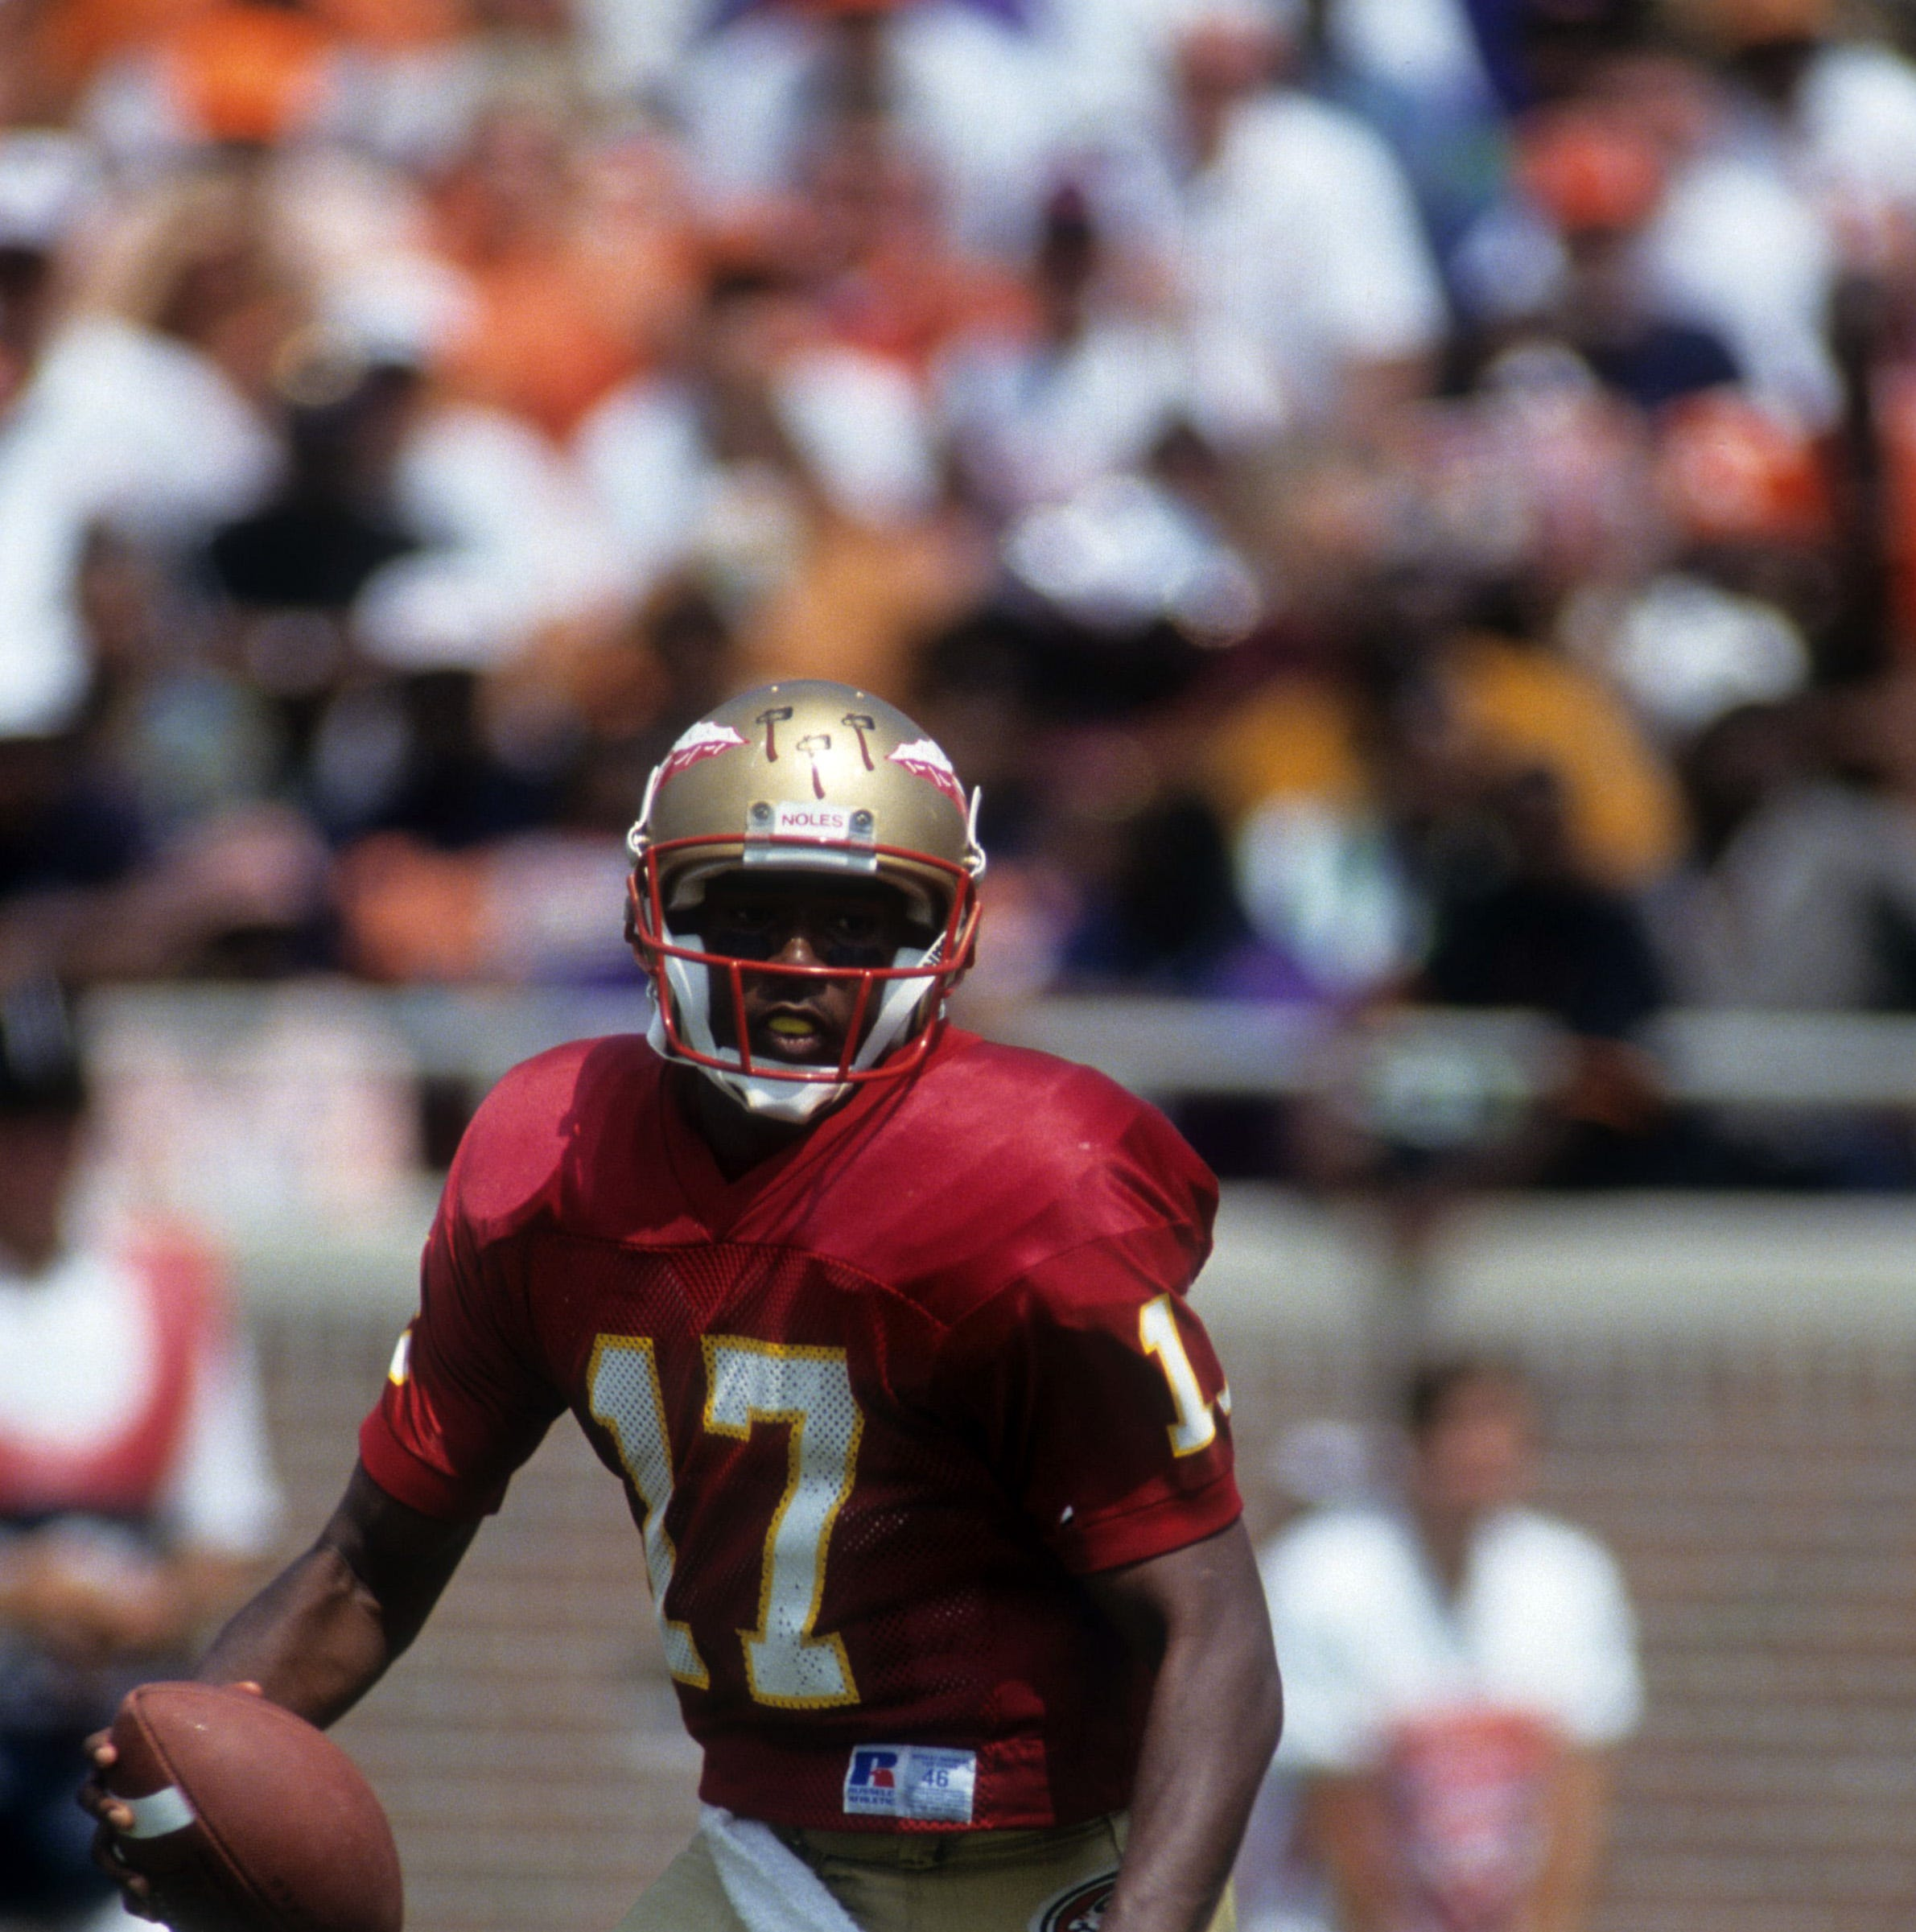 Charlie Ward's Heisman Trophy 25 years ago became historic in many ways: Vilona